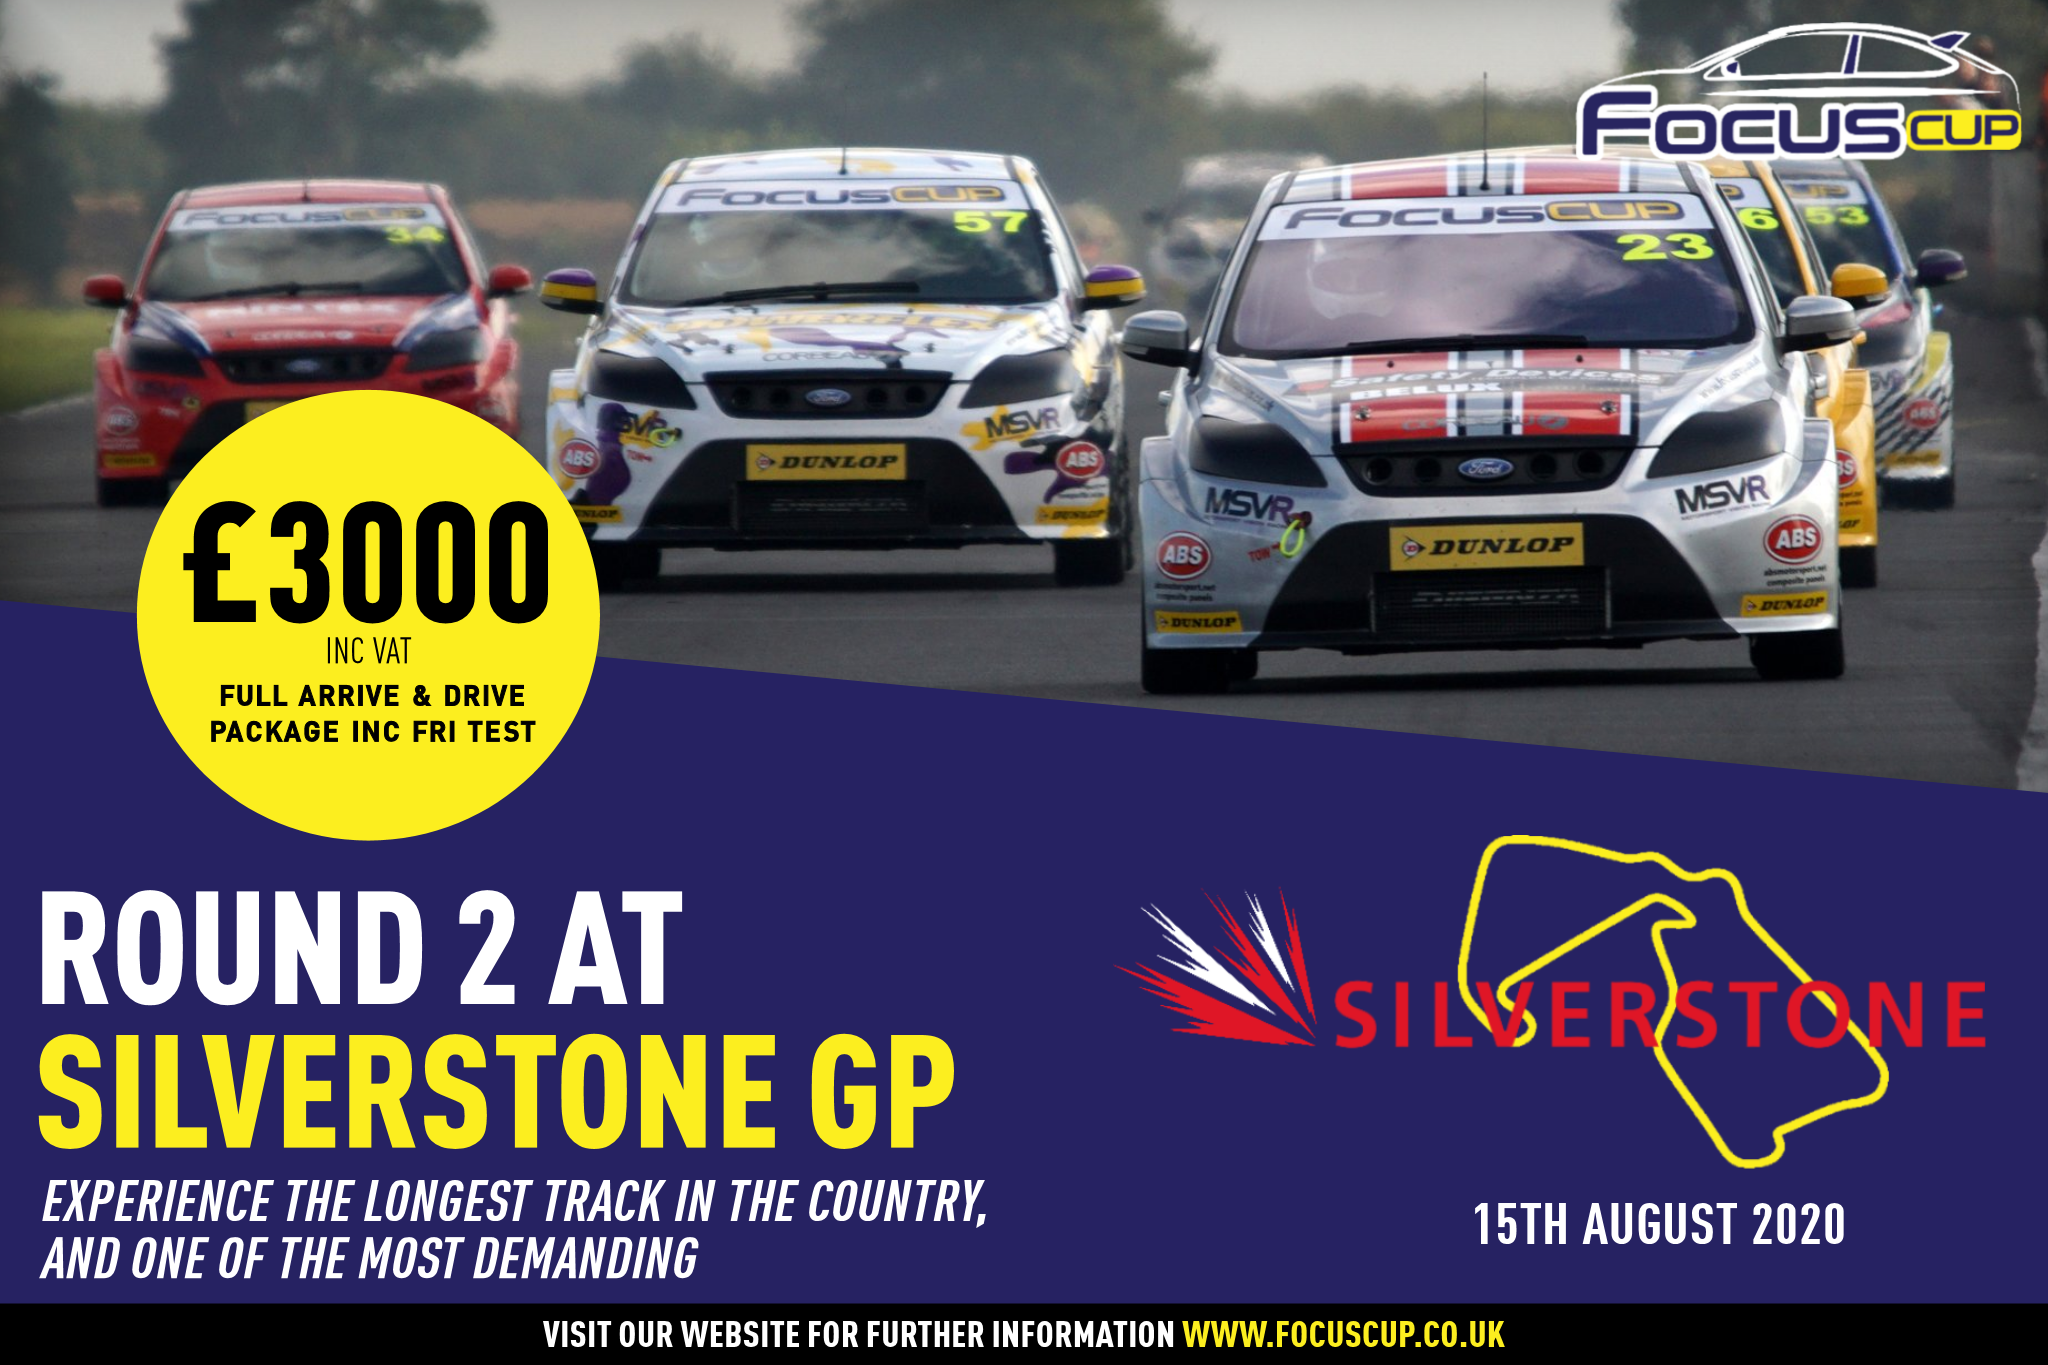 Your chance to race SILVERSTONE GP